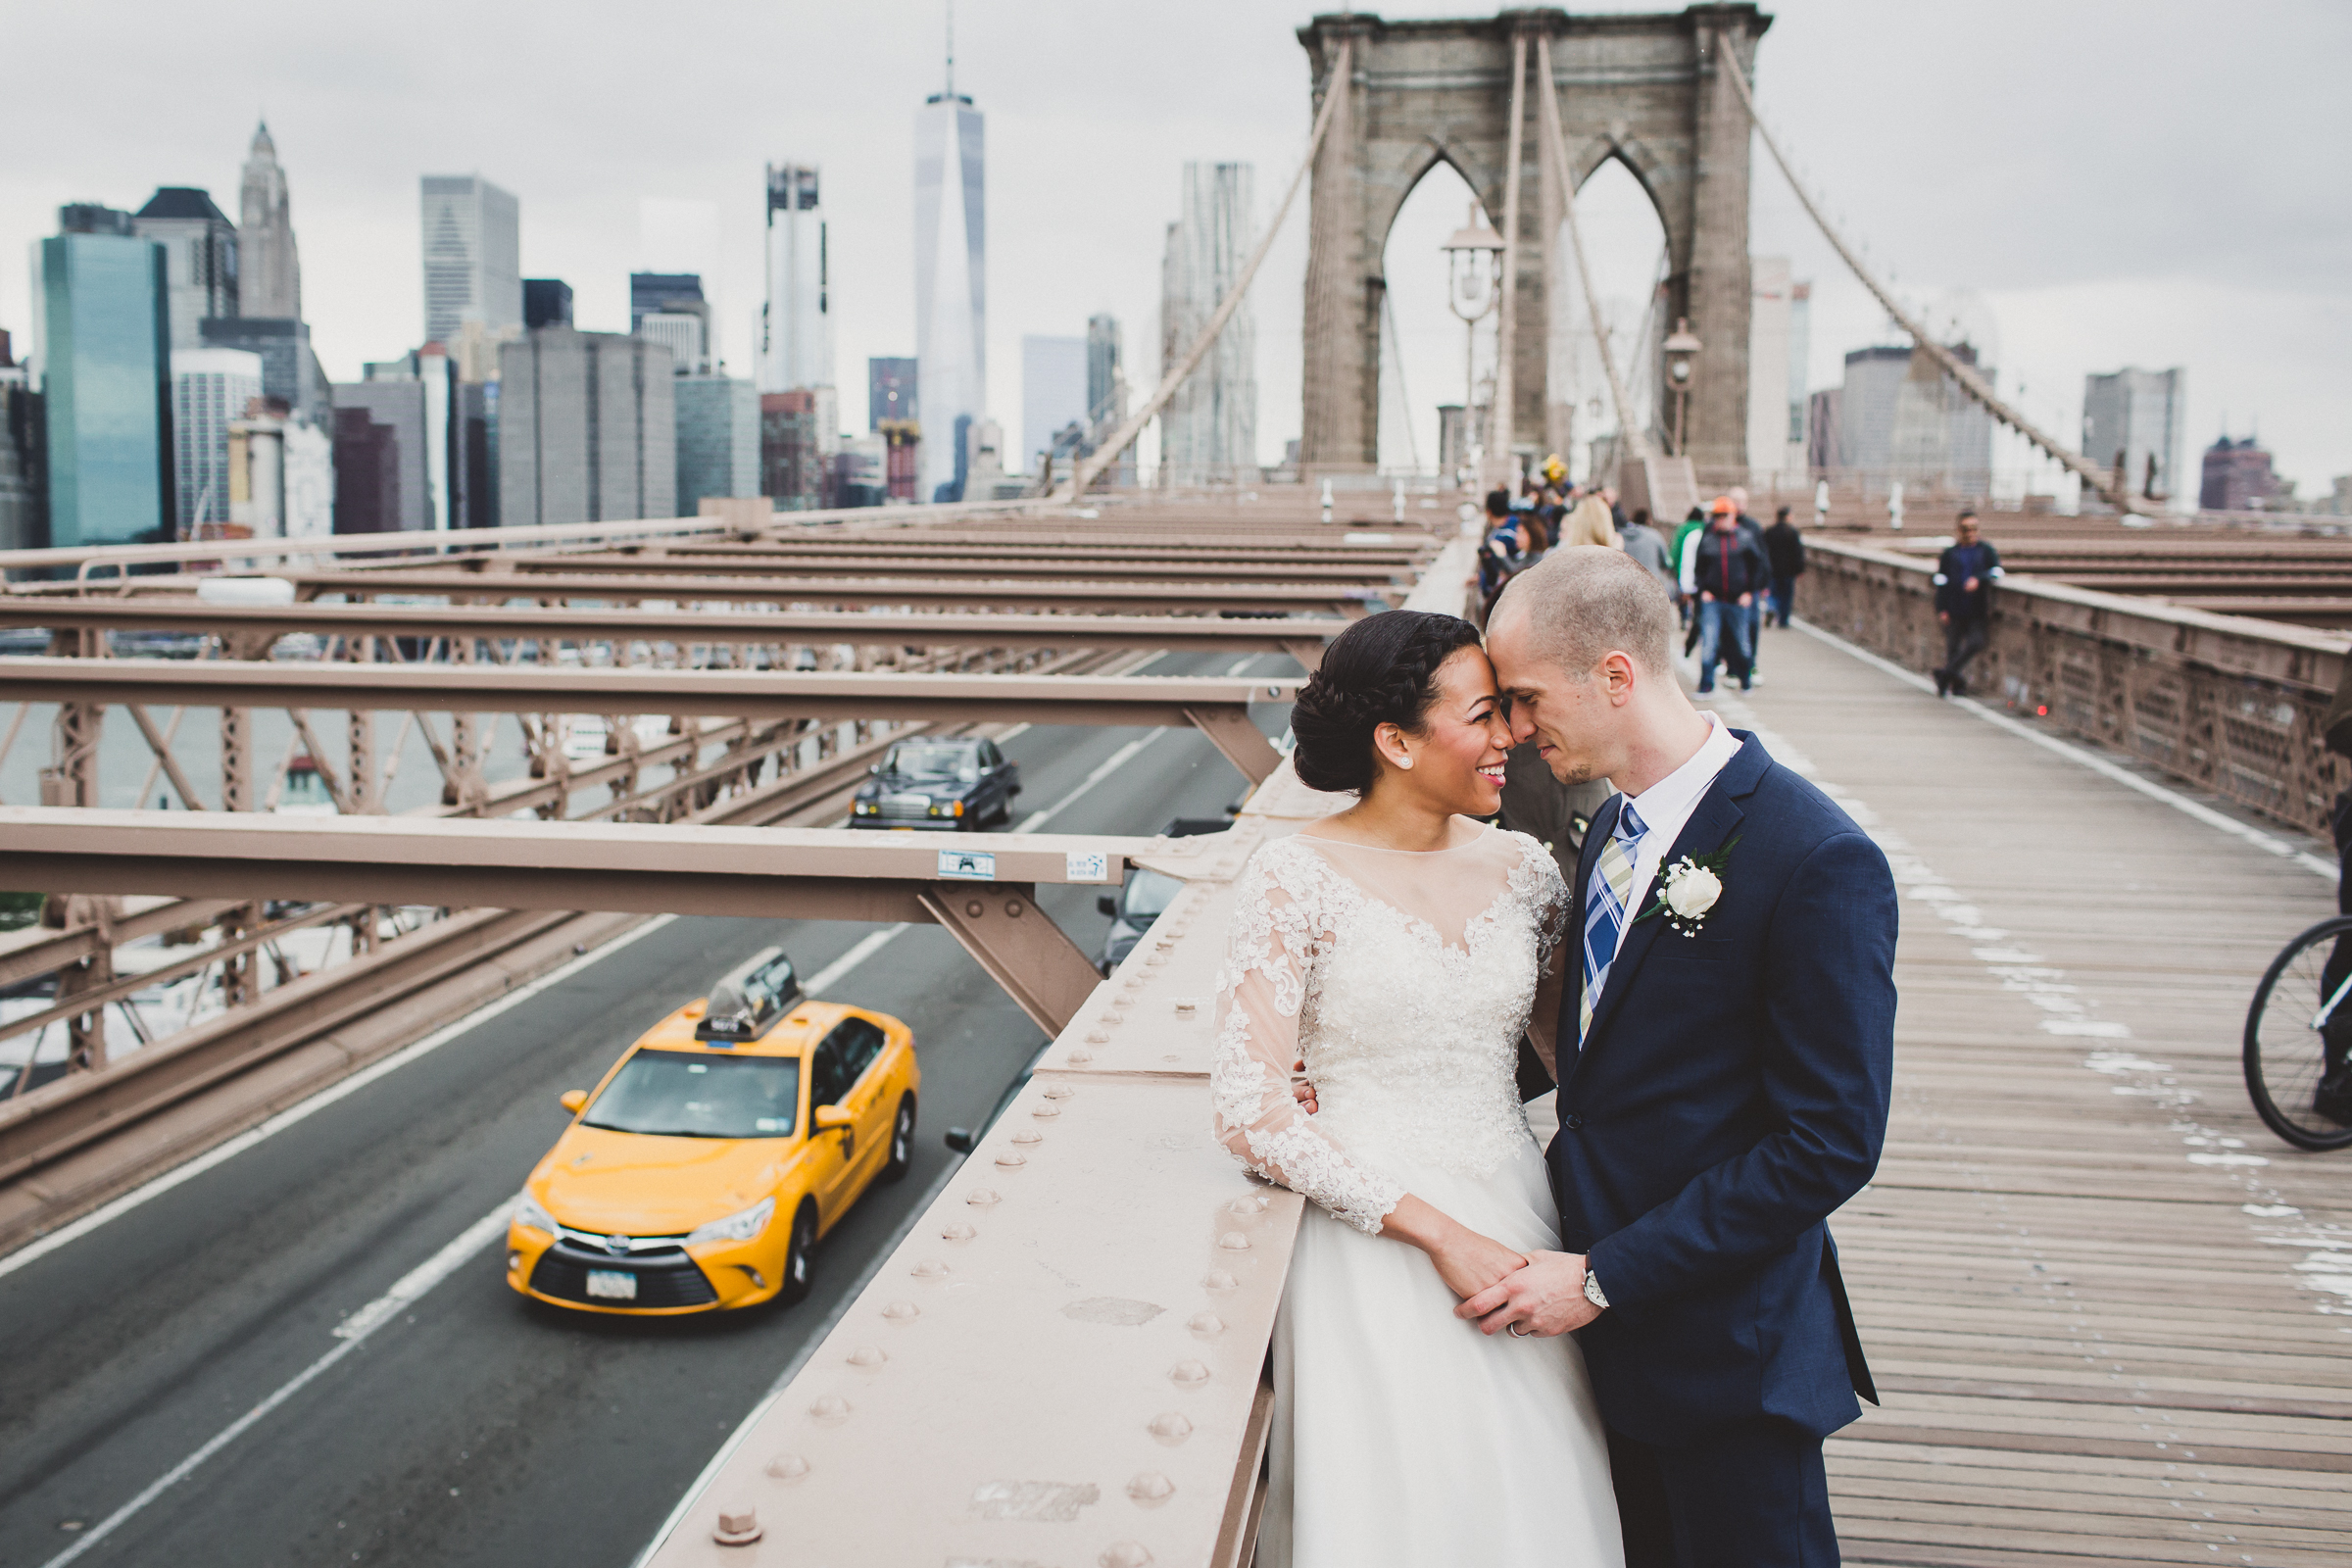 Wagner-Cove-Central-Park-Elopement-New-York-Documentary-Wedding-Photographer-51.jpg